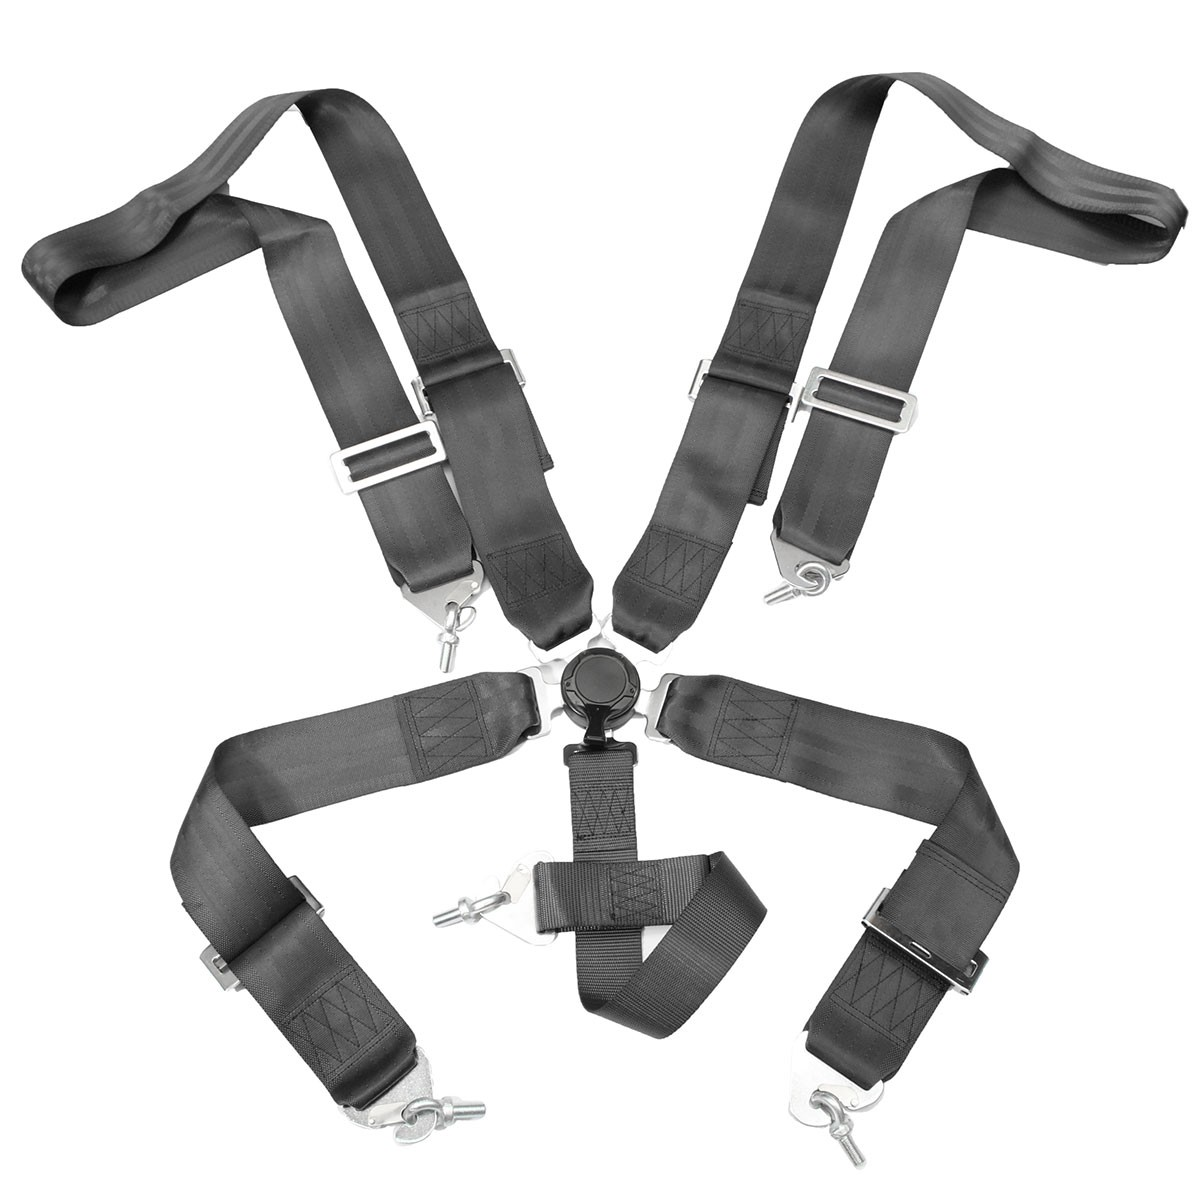 5 Point Cam Lock Racing Car Seat Belt Race Safety Adjustable Strap Nylon Harness